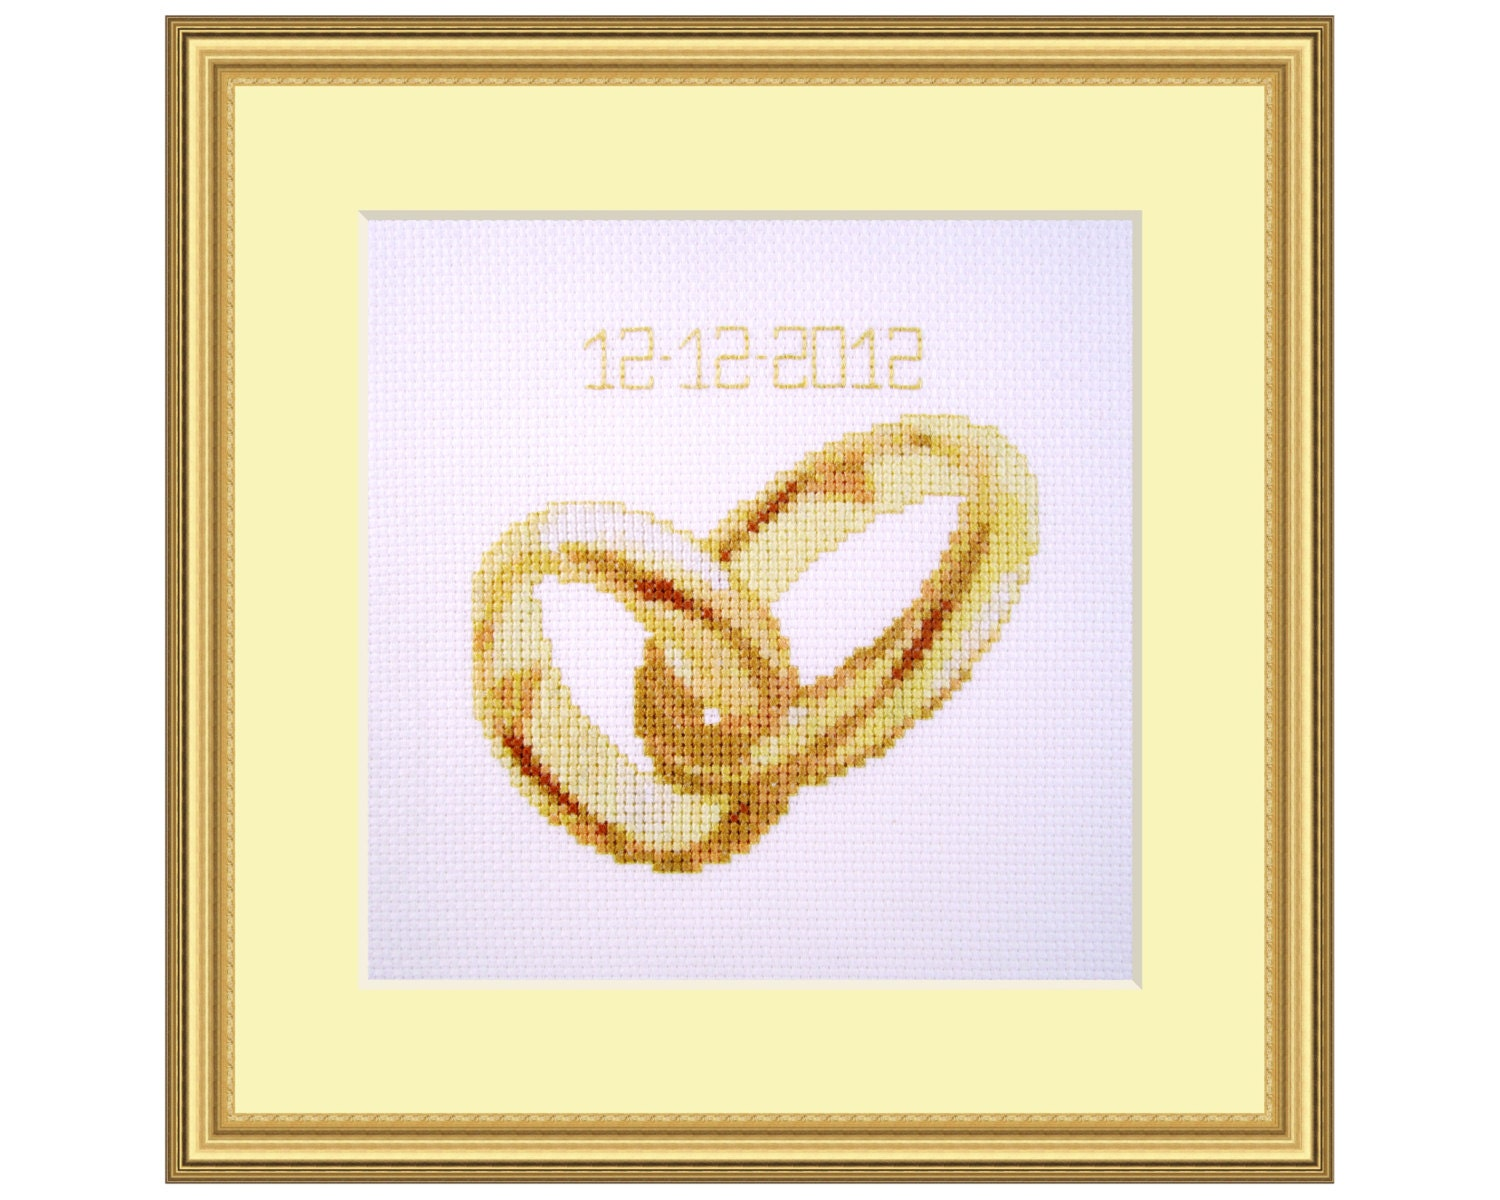 Wedding rings cross stitch kit marriage diy gift small